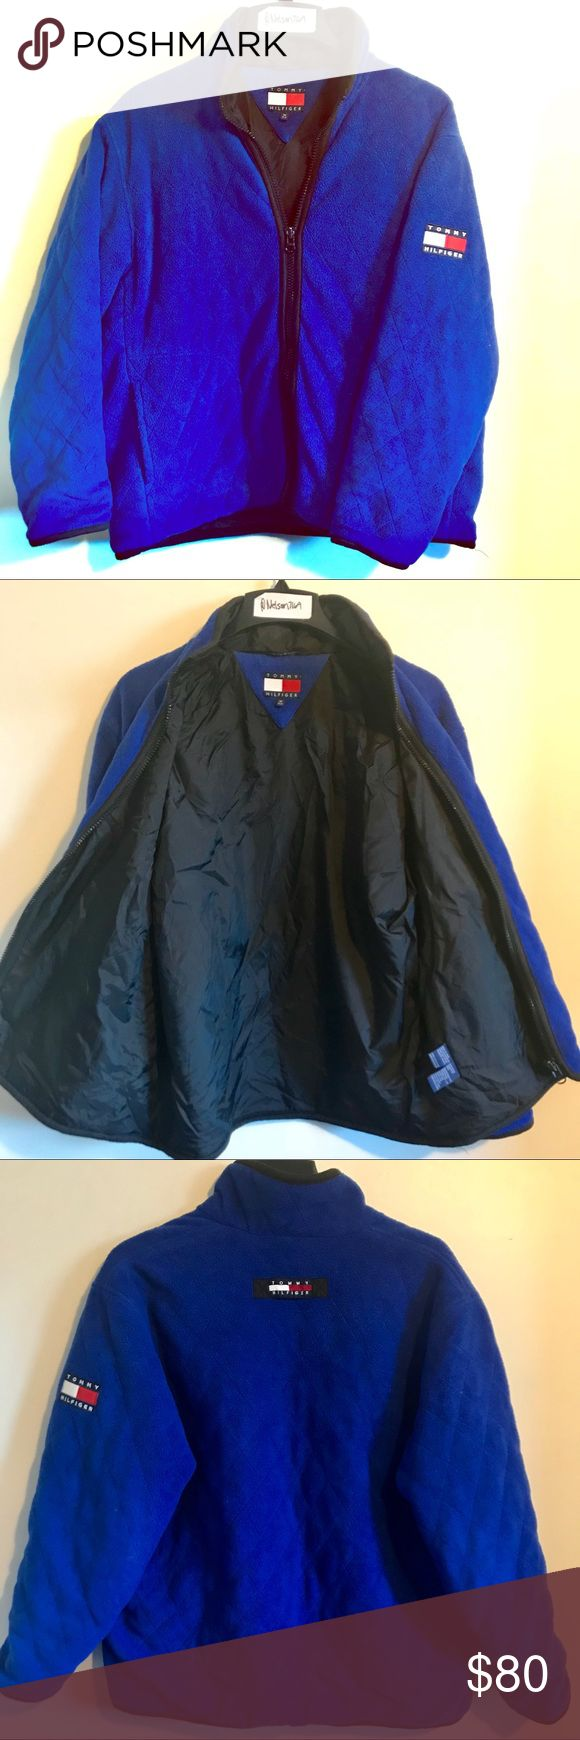 90s Vintage Tommy Hilfiger Down Jacket Flag Logo Great shape men's medium vintage Tommy Hilfiger full zip down jacket. Royal blue with patch flag logos, nylon lining, fleece exterior, & two front pockets. This is a great vintage find. Tommy Hilfiger Jackets & Coats